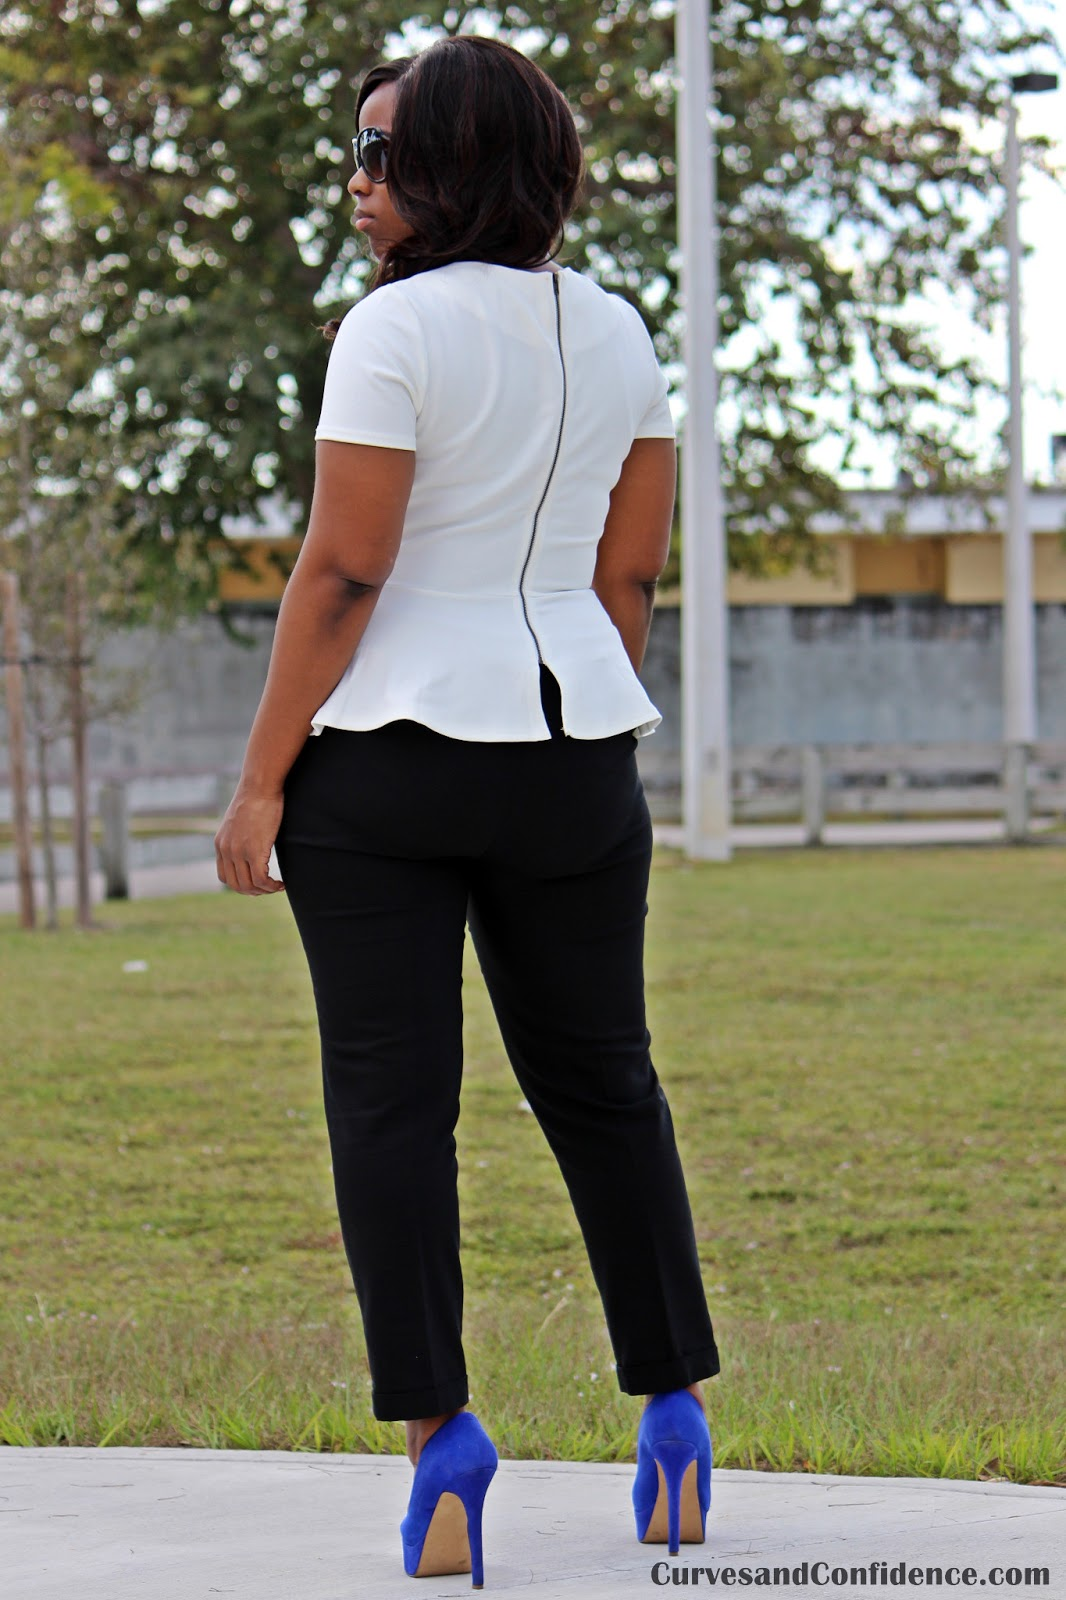 http://2.bp.blogspot.com/-Wi3mYqbTcUI/UQGoSbp1lqI/AAAAAAAAEY0/Xk66nnCwKA0/s1600/white+peplum+top,+curvy+girl+wearing+a+white+peplum,+how+to+wear+a+peplum,+peplum+with+zipper+in+the+back,+jessica+simpson+royal+blue+waleo+pumps.JPG